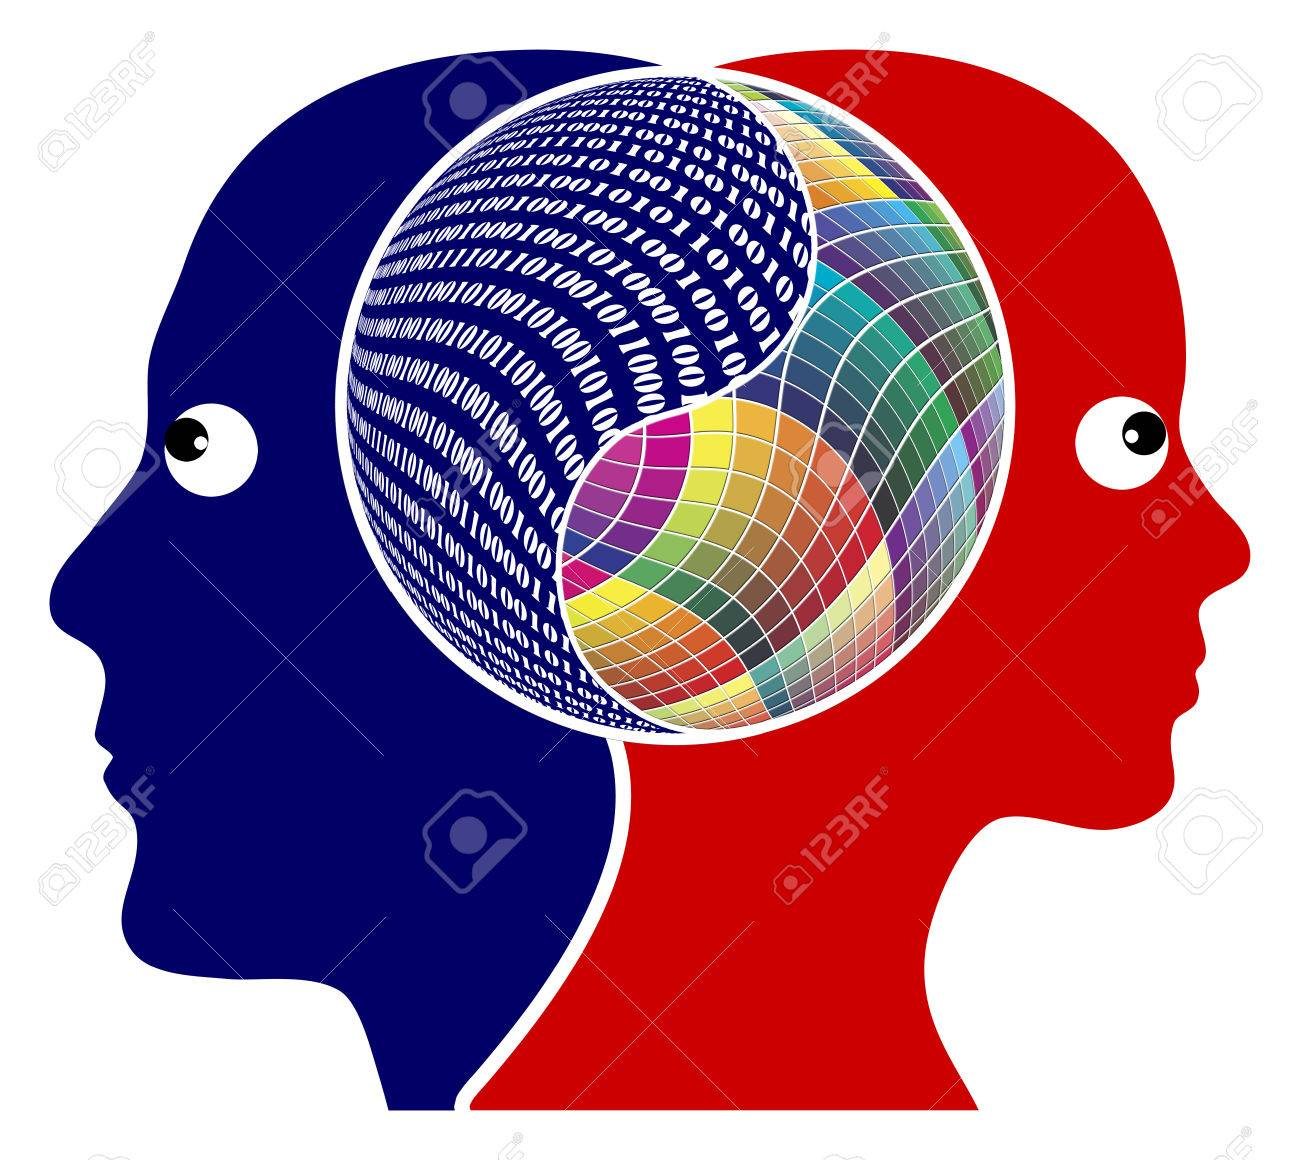 Rationality or Creativity The right brain and the left brain got different function, either logical or creative thinking - 30819433